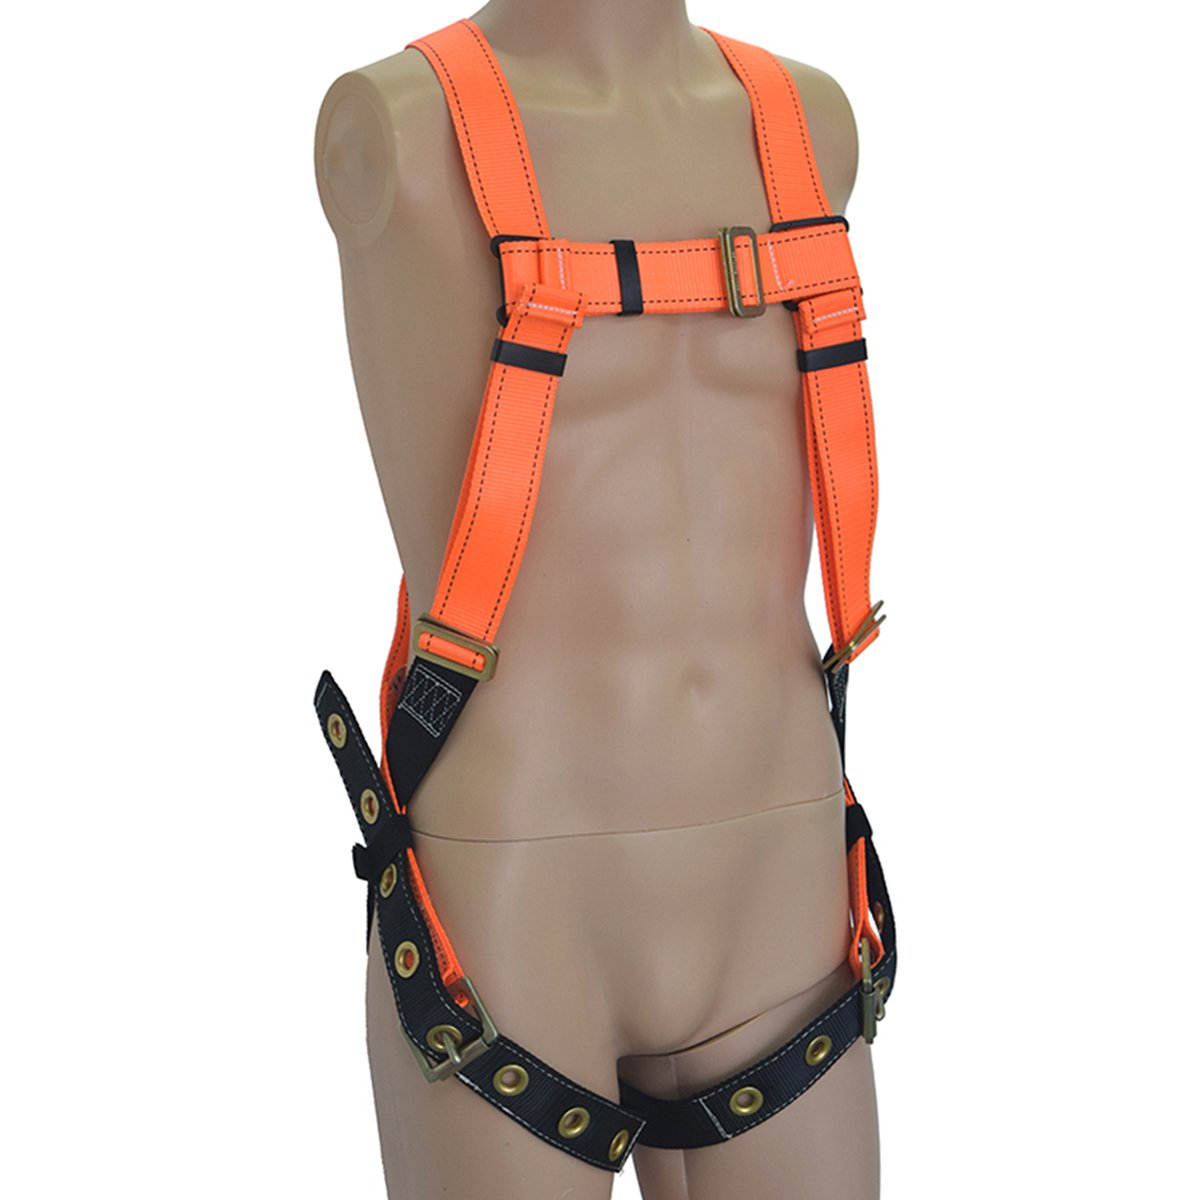 KSEIBI 421025 Full Body Fall Protection Daily Light Weight Safety Harness w D-Ring - Chest Pass Thru Buckles and Grommet Leg Strap Connectors (FLEX-A)